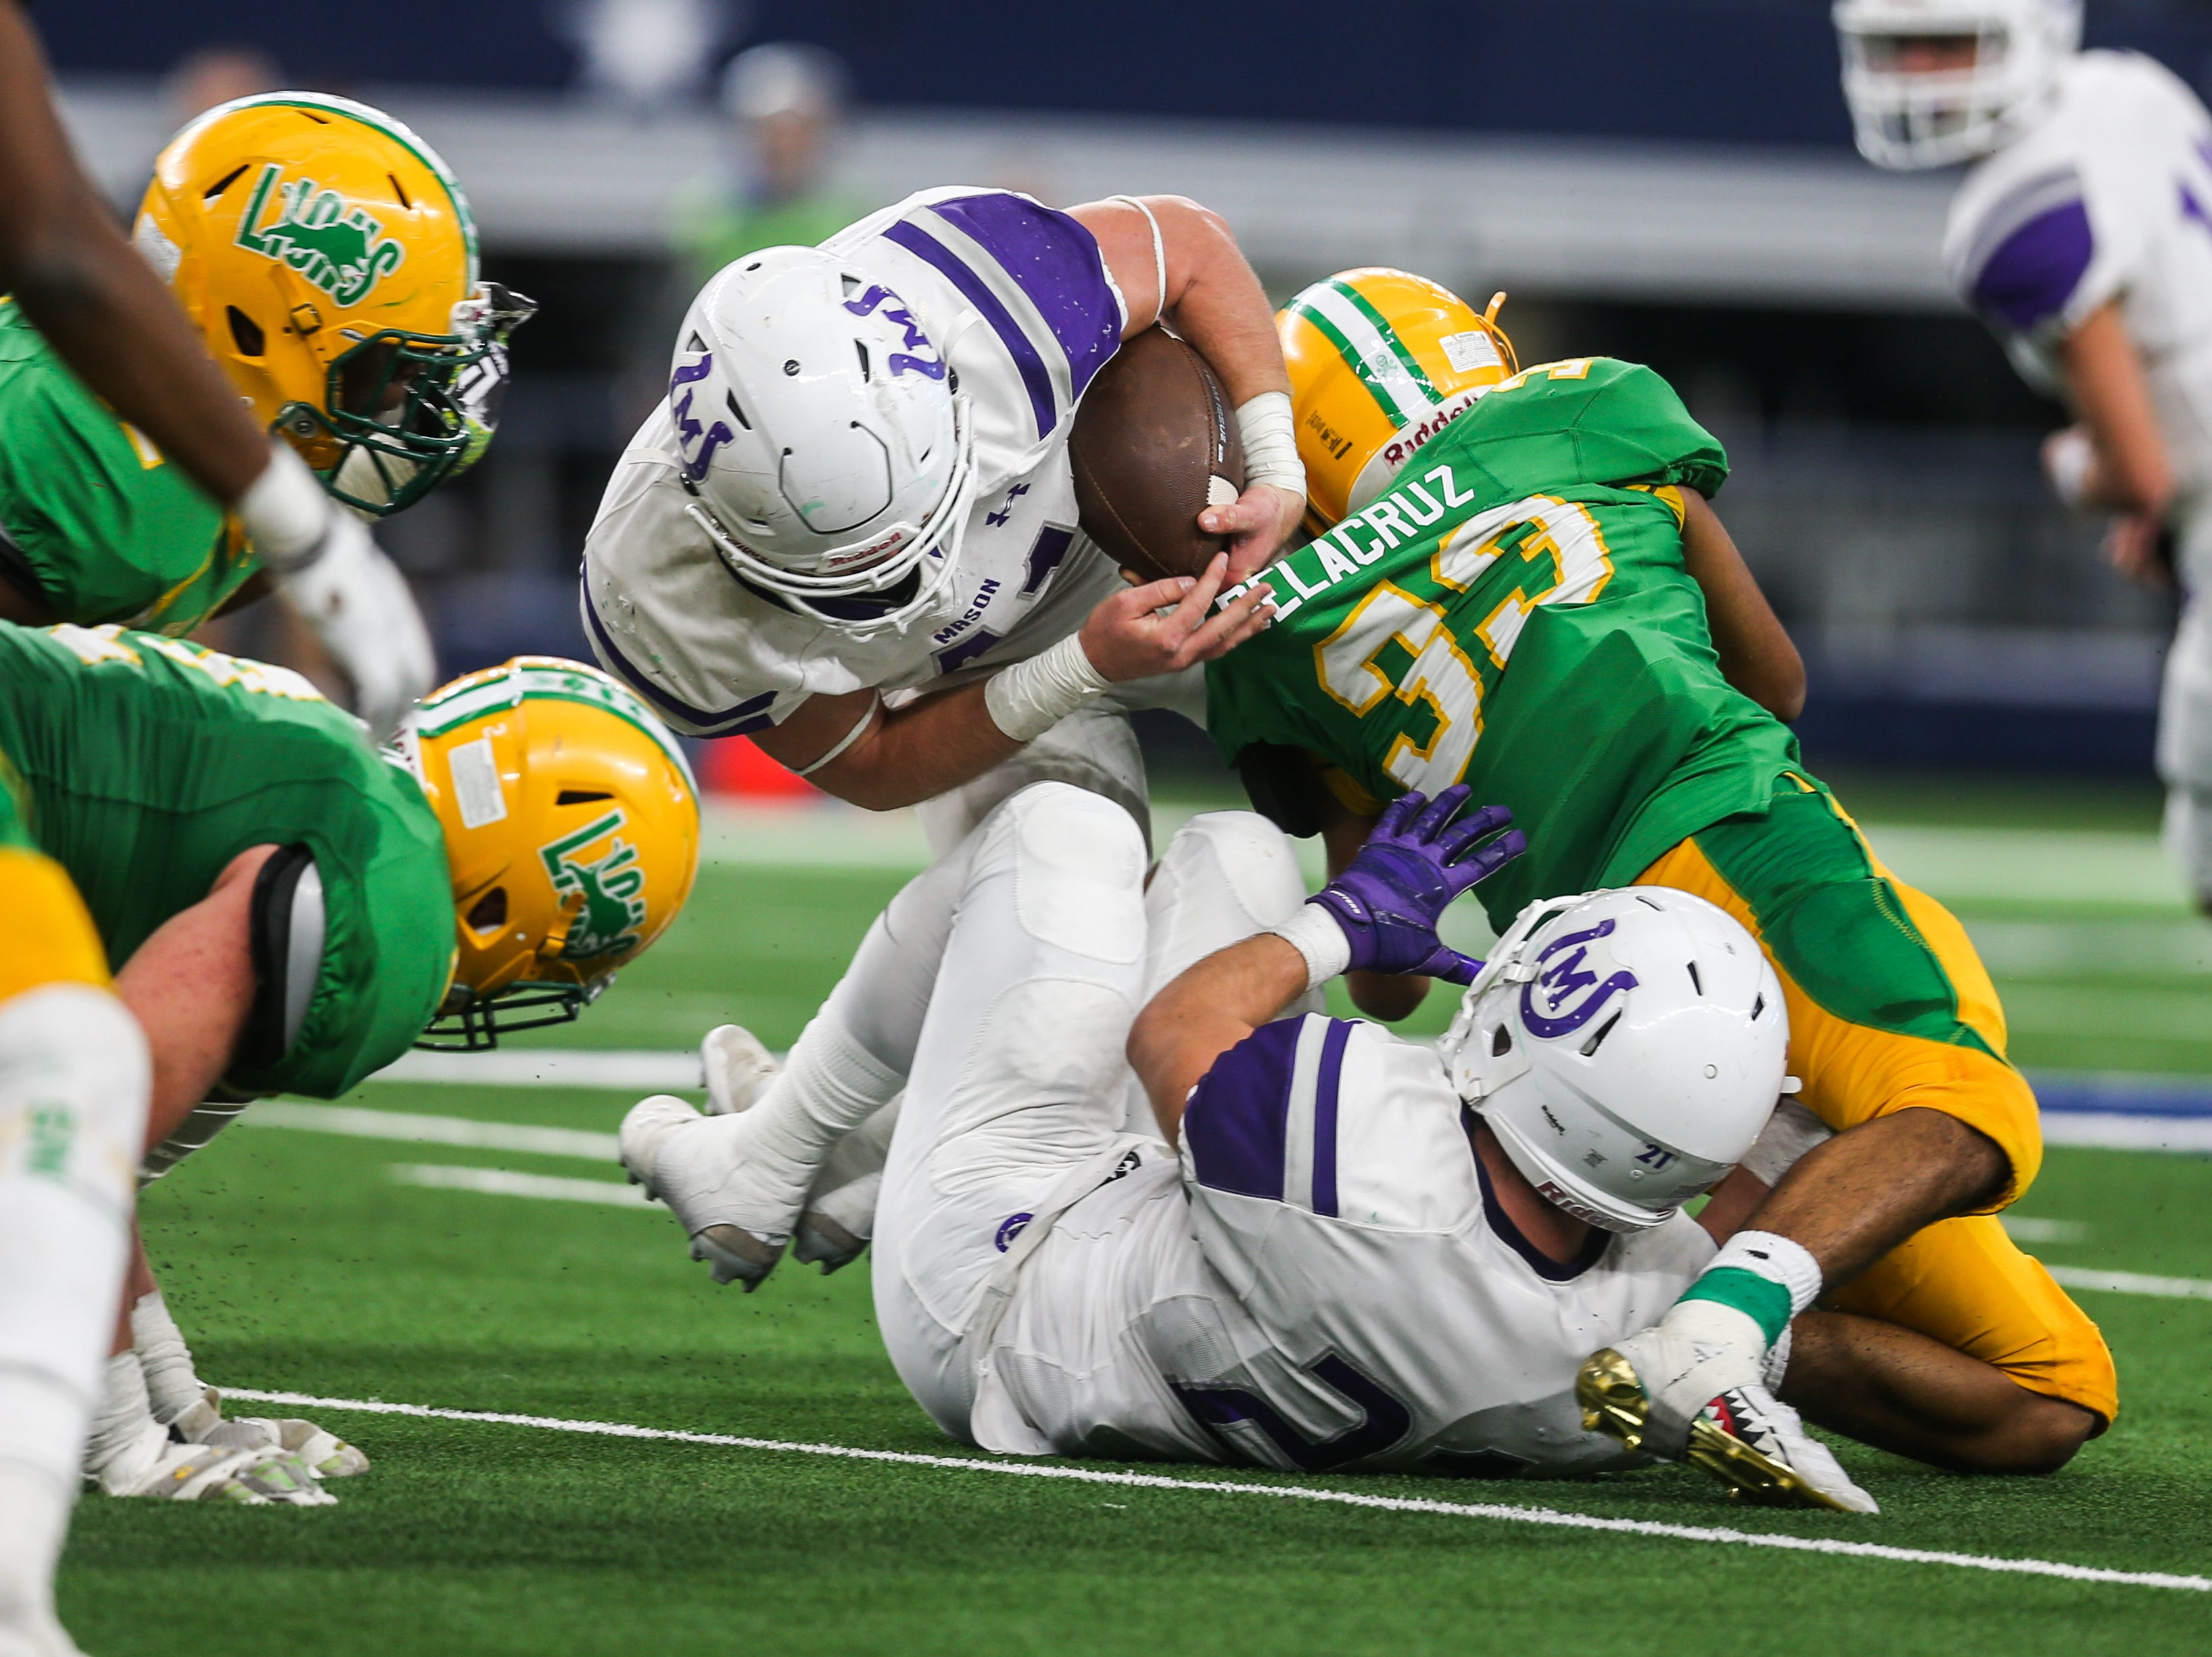 Mason's Klay Klaemer is tackled during the championship game against New Deal on Thursday, Dec. 20, 2018 at the AT&T Stadium in Arlington.